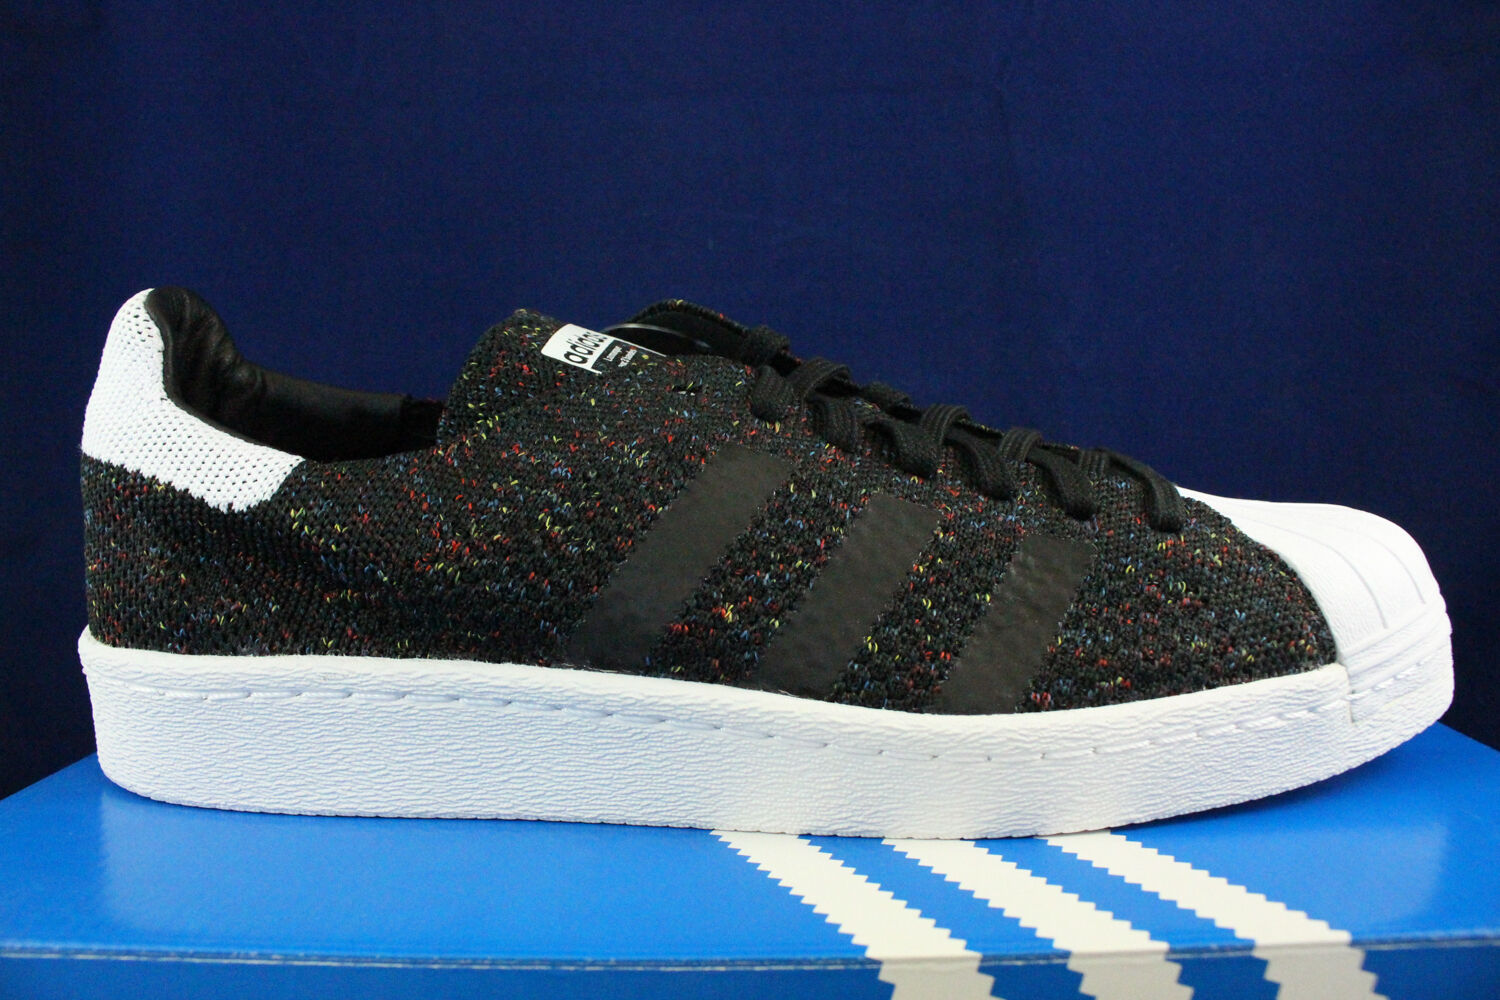 ADIDAS ORIGINALS SUPERSTAR años 80 Color PRIMEKNIT Core Negro Multi Color 80 S75844 0f0509